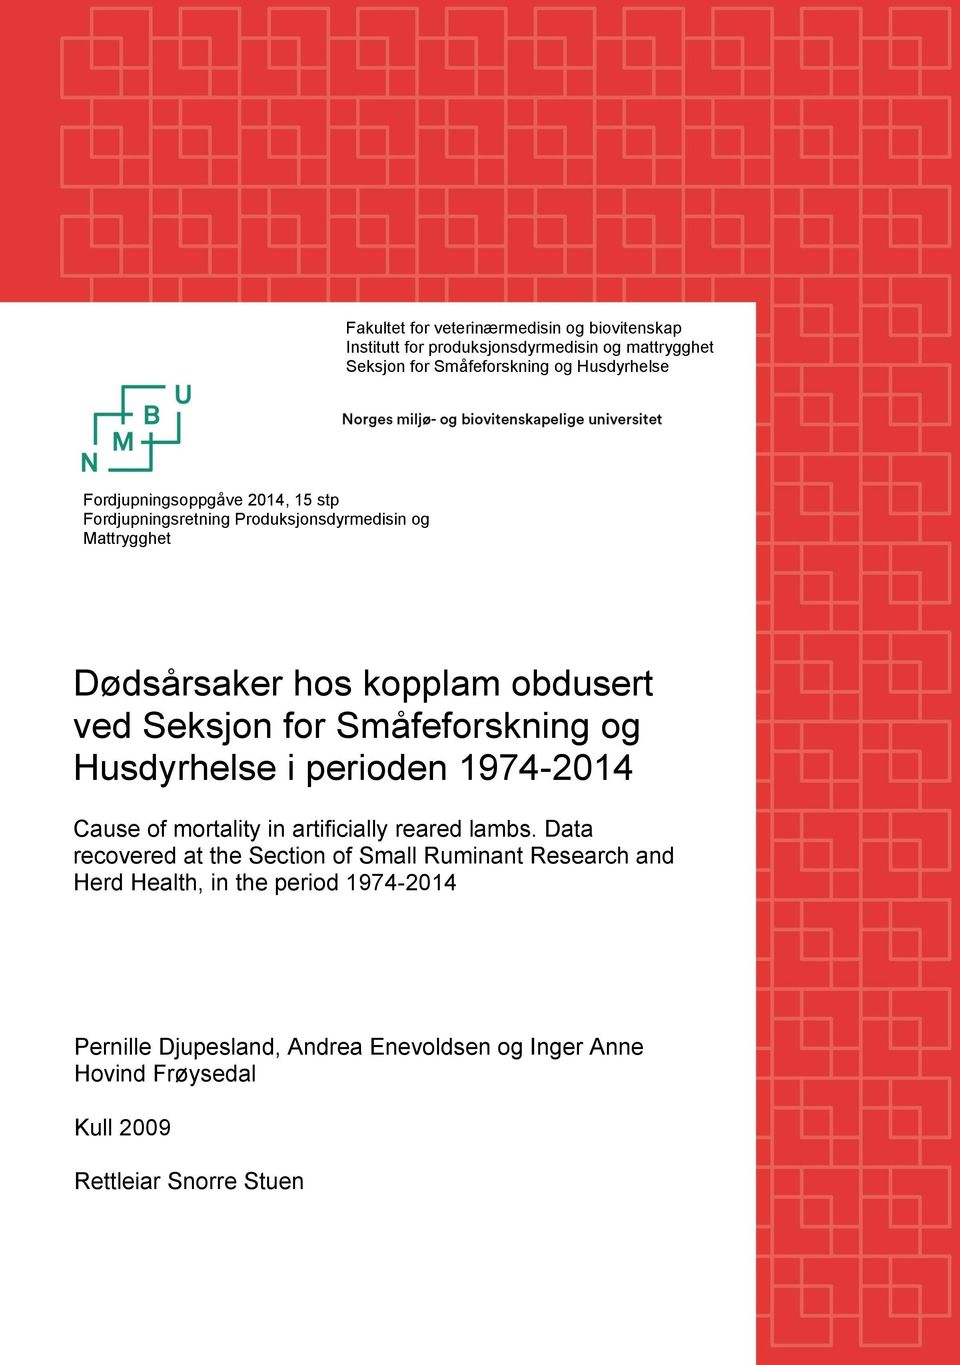 og Husdyrhelse i perioden 1974-2014 Cause of mortality in artificially reared lambs.